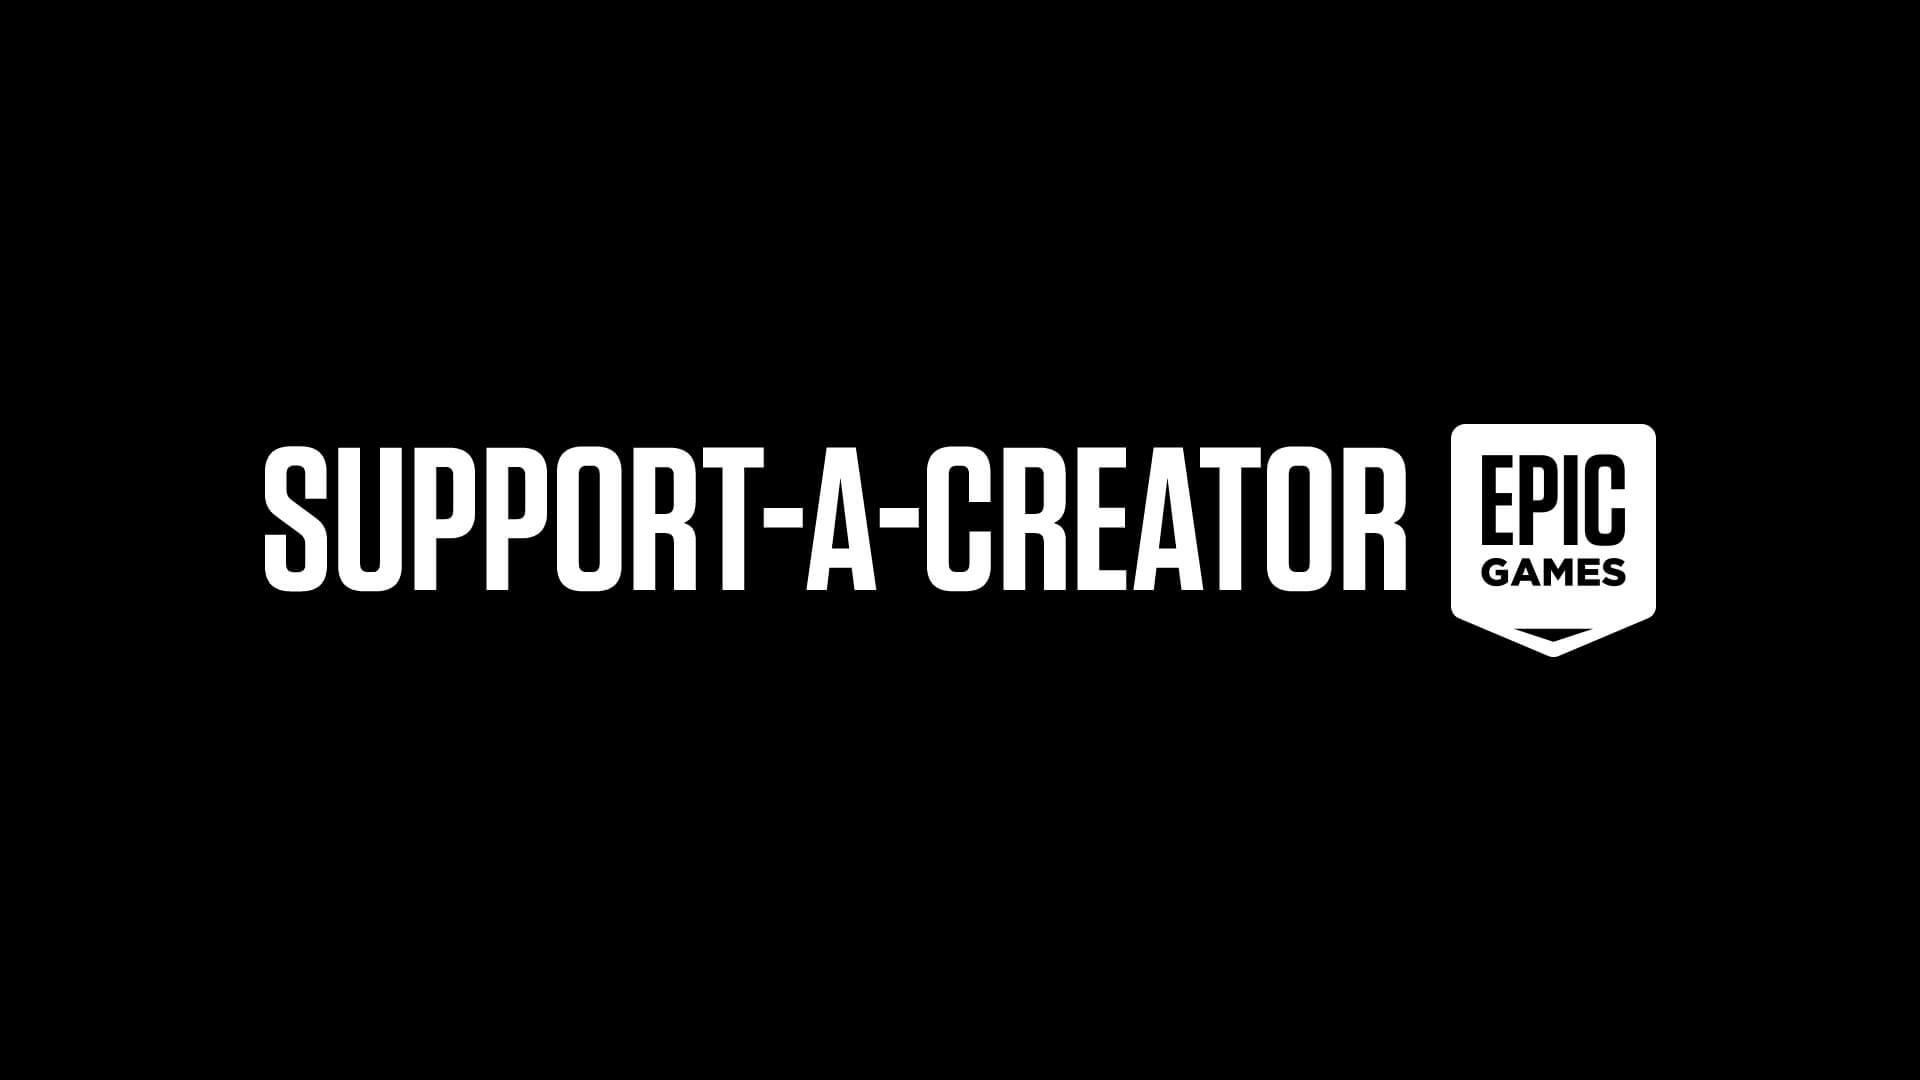 Epic Games Support-A-Creator 2.0 is Here!